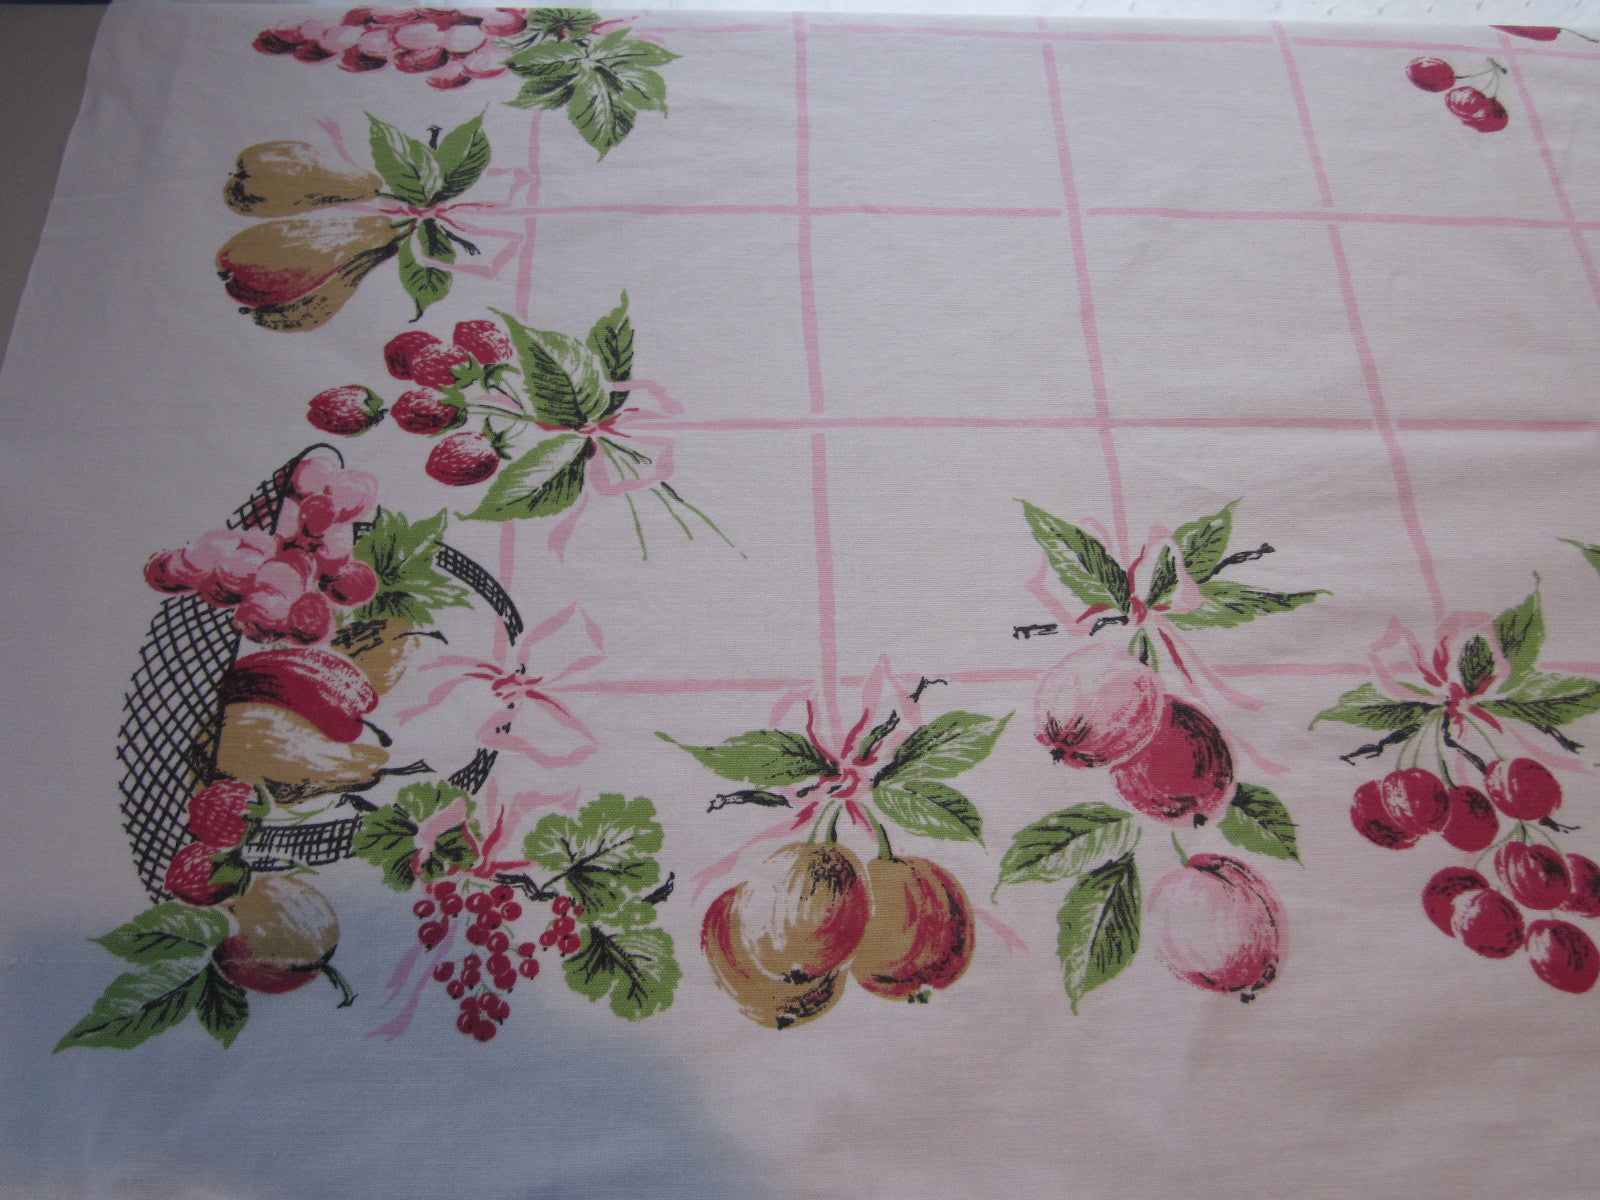 Sweet Pastel Fruit on Pink Ribbons Vintage Printed Tablecloth (50 X 47)